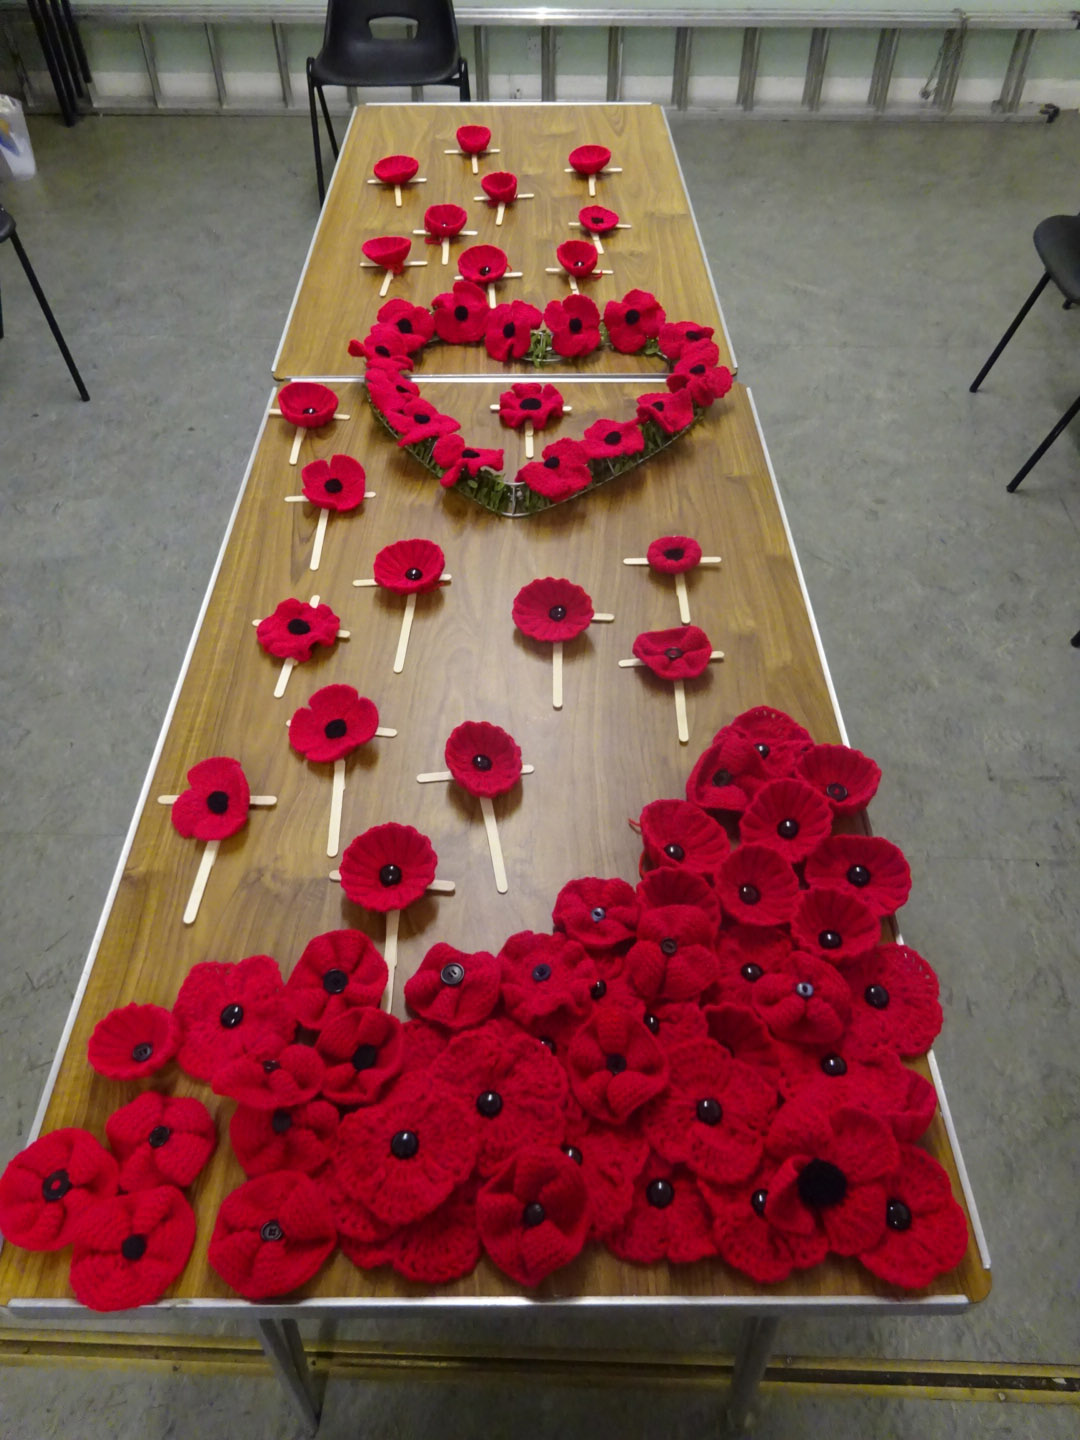 Just some of the poppies organised for the upcoming display in November, which will include crochet and knitted versions.